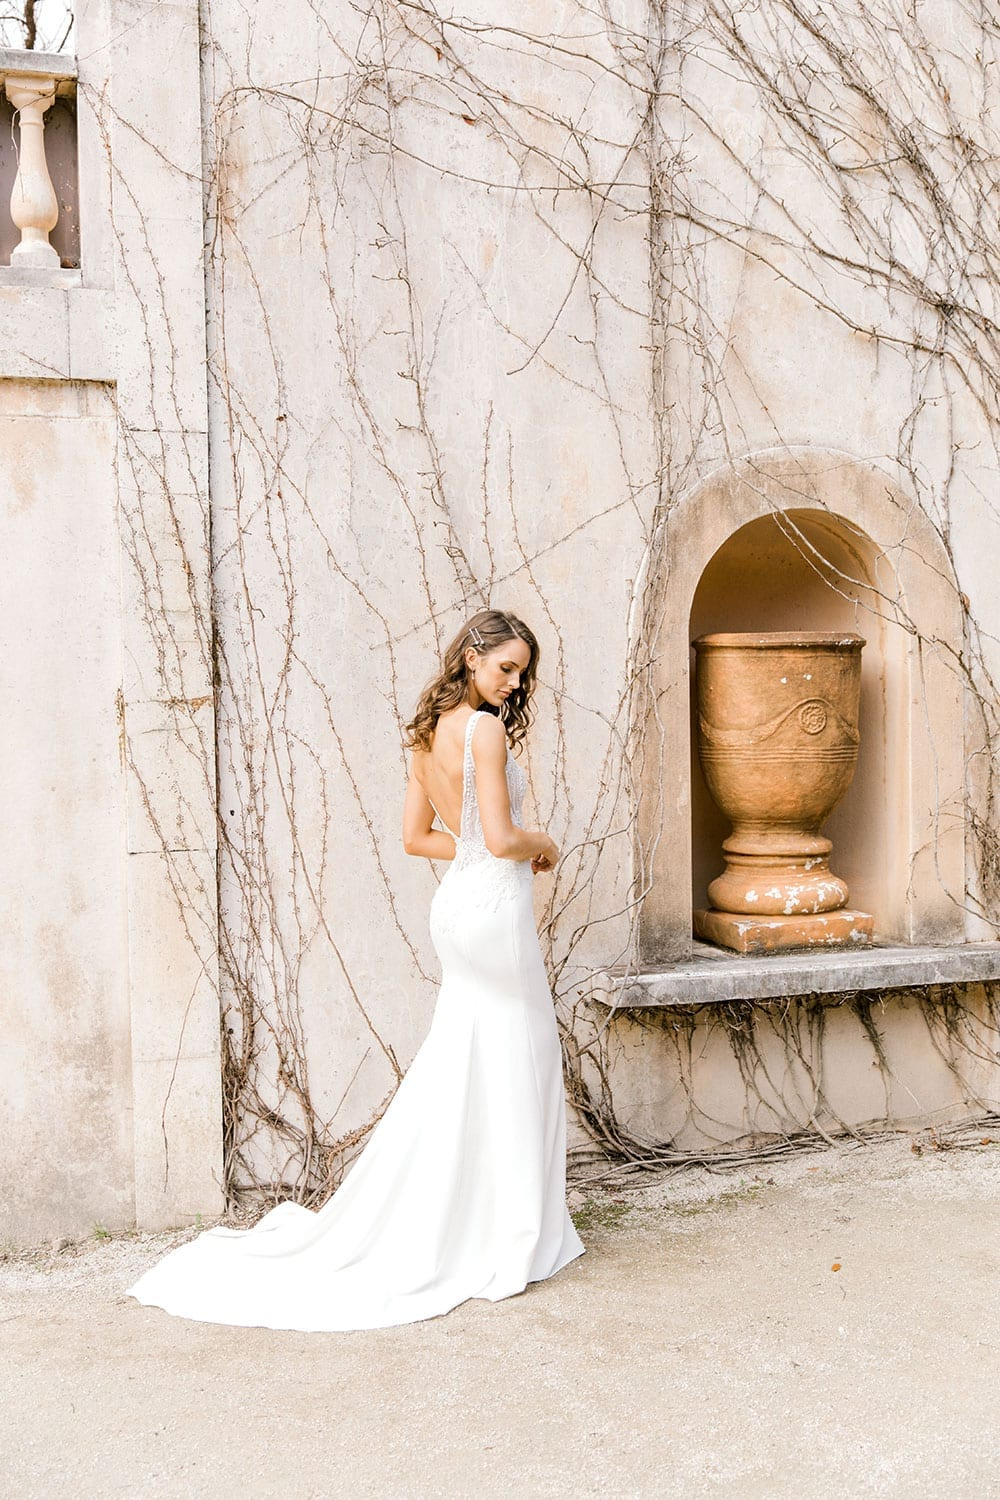 Model wearing Vinka Design Martina Wedding Dress, an Elegant Simple Wedding Gown in front of old building facing away with dress train displayed